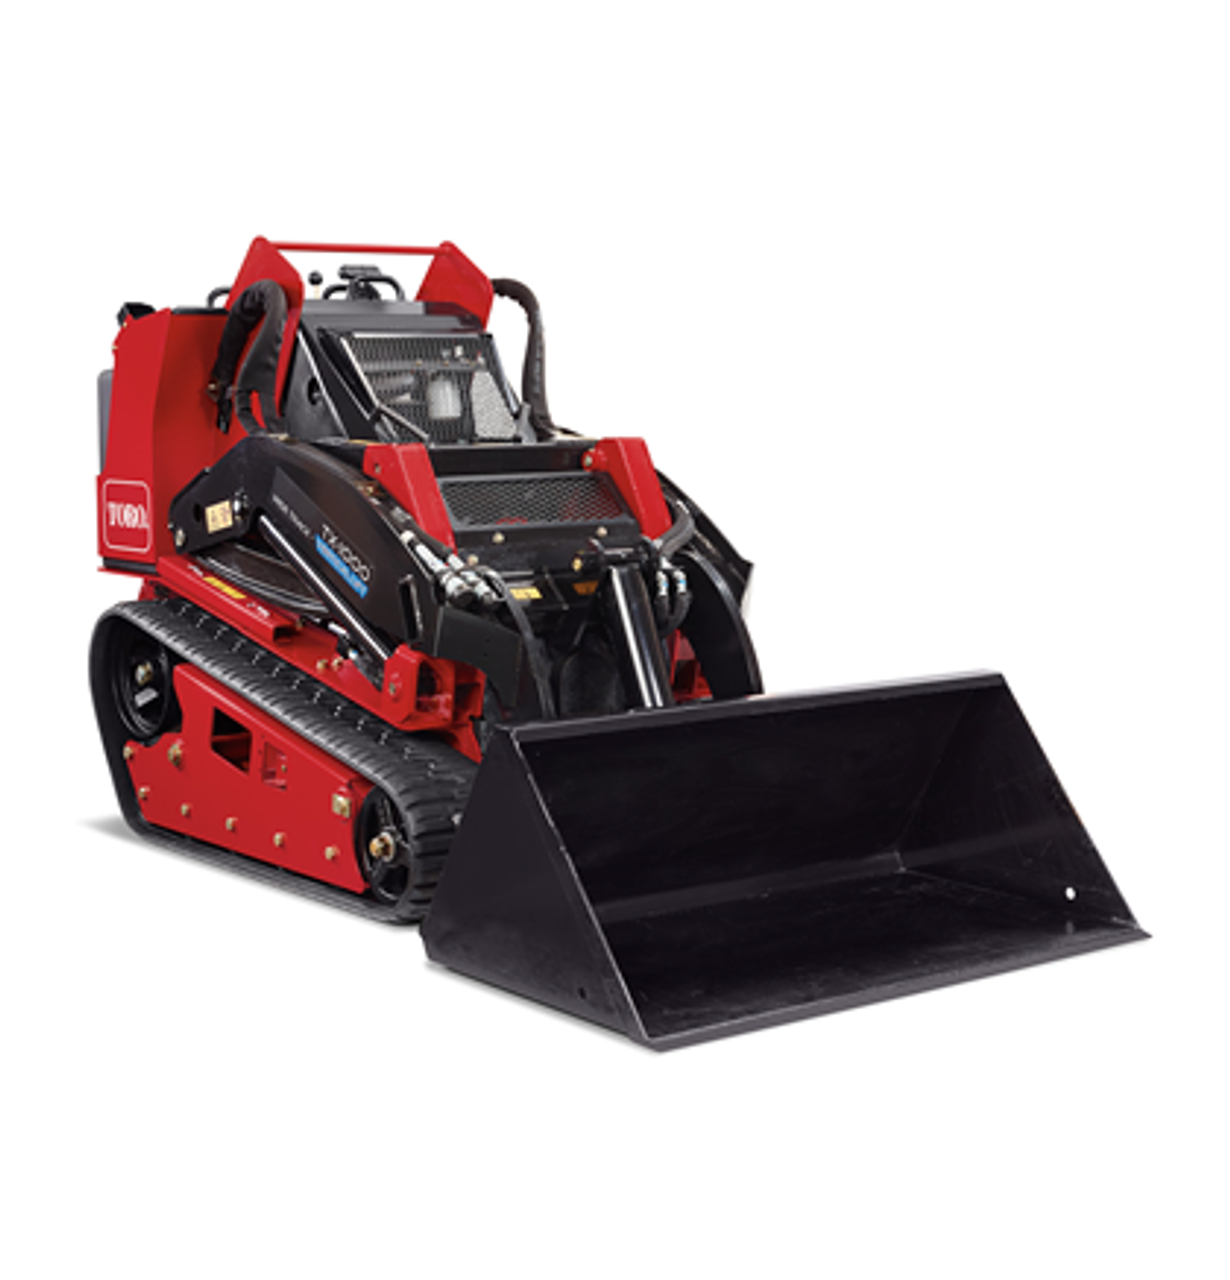 Toro TX 1000 Wide and Narrow Tracked Compact Loader